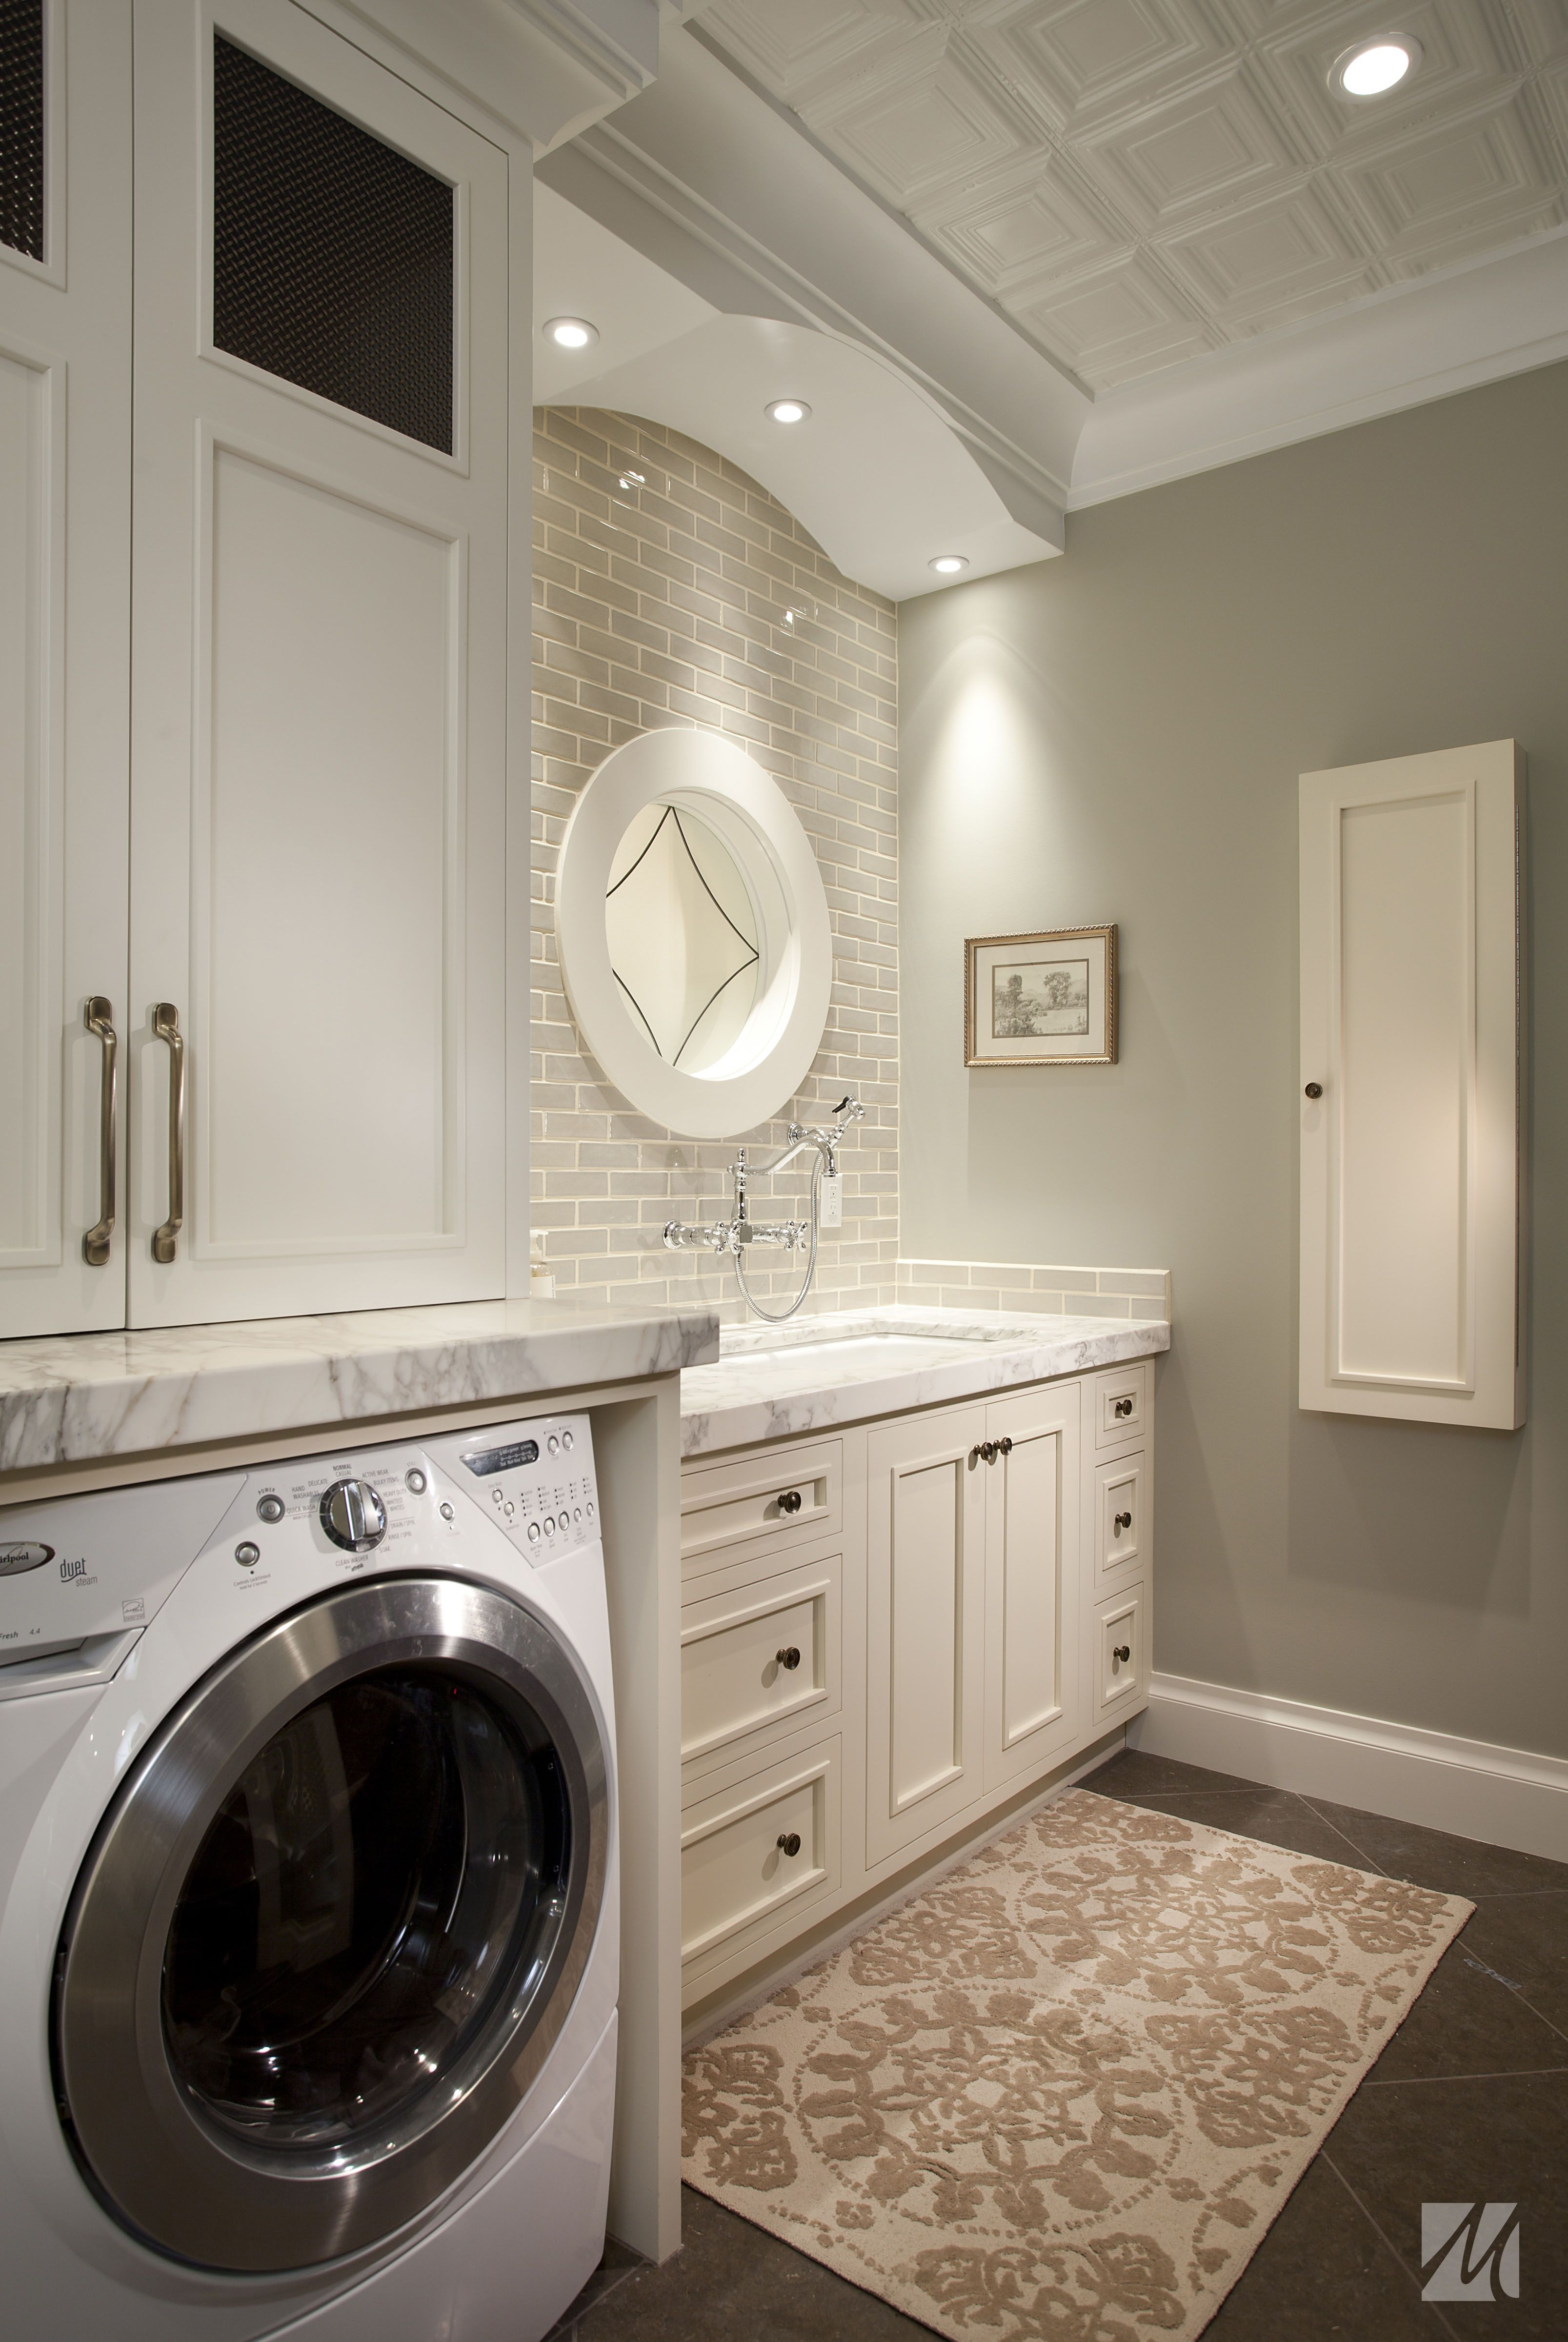 Amazing Laundry Room Color Ideas With Laundry Room Sinks Cabinet